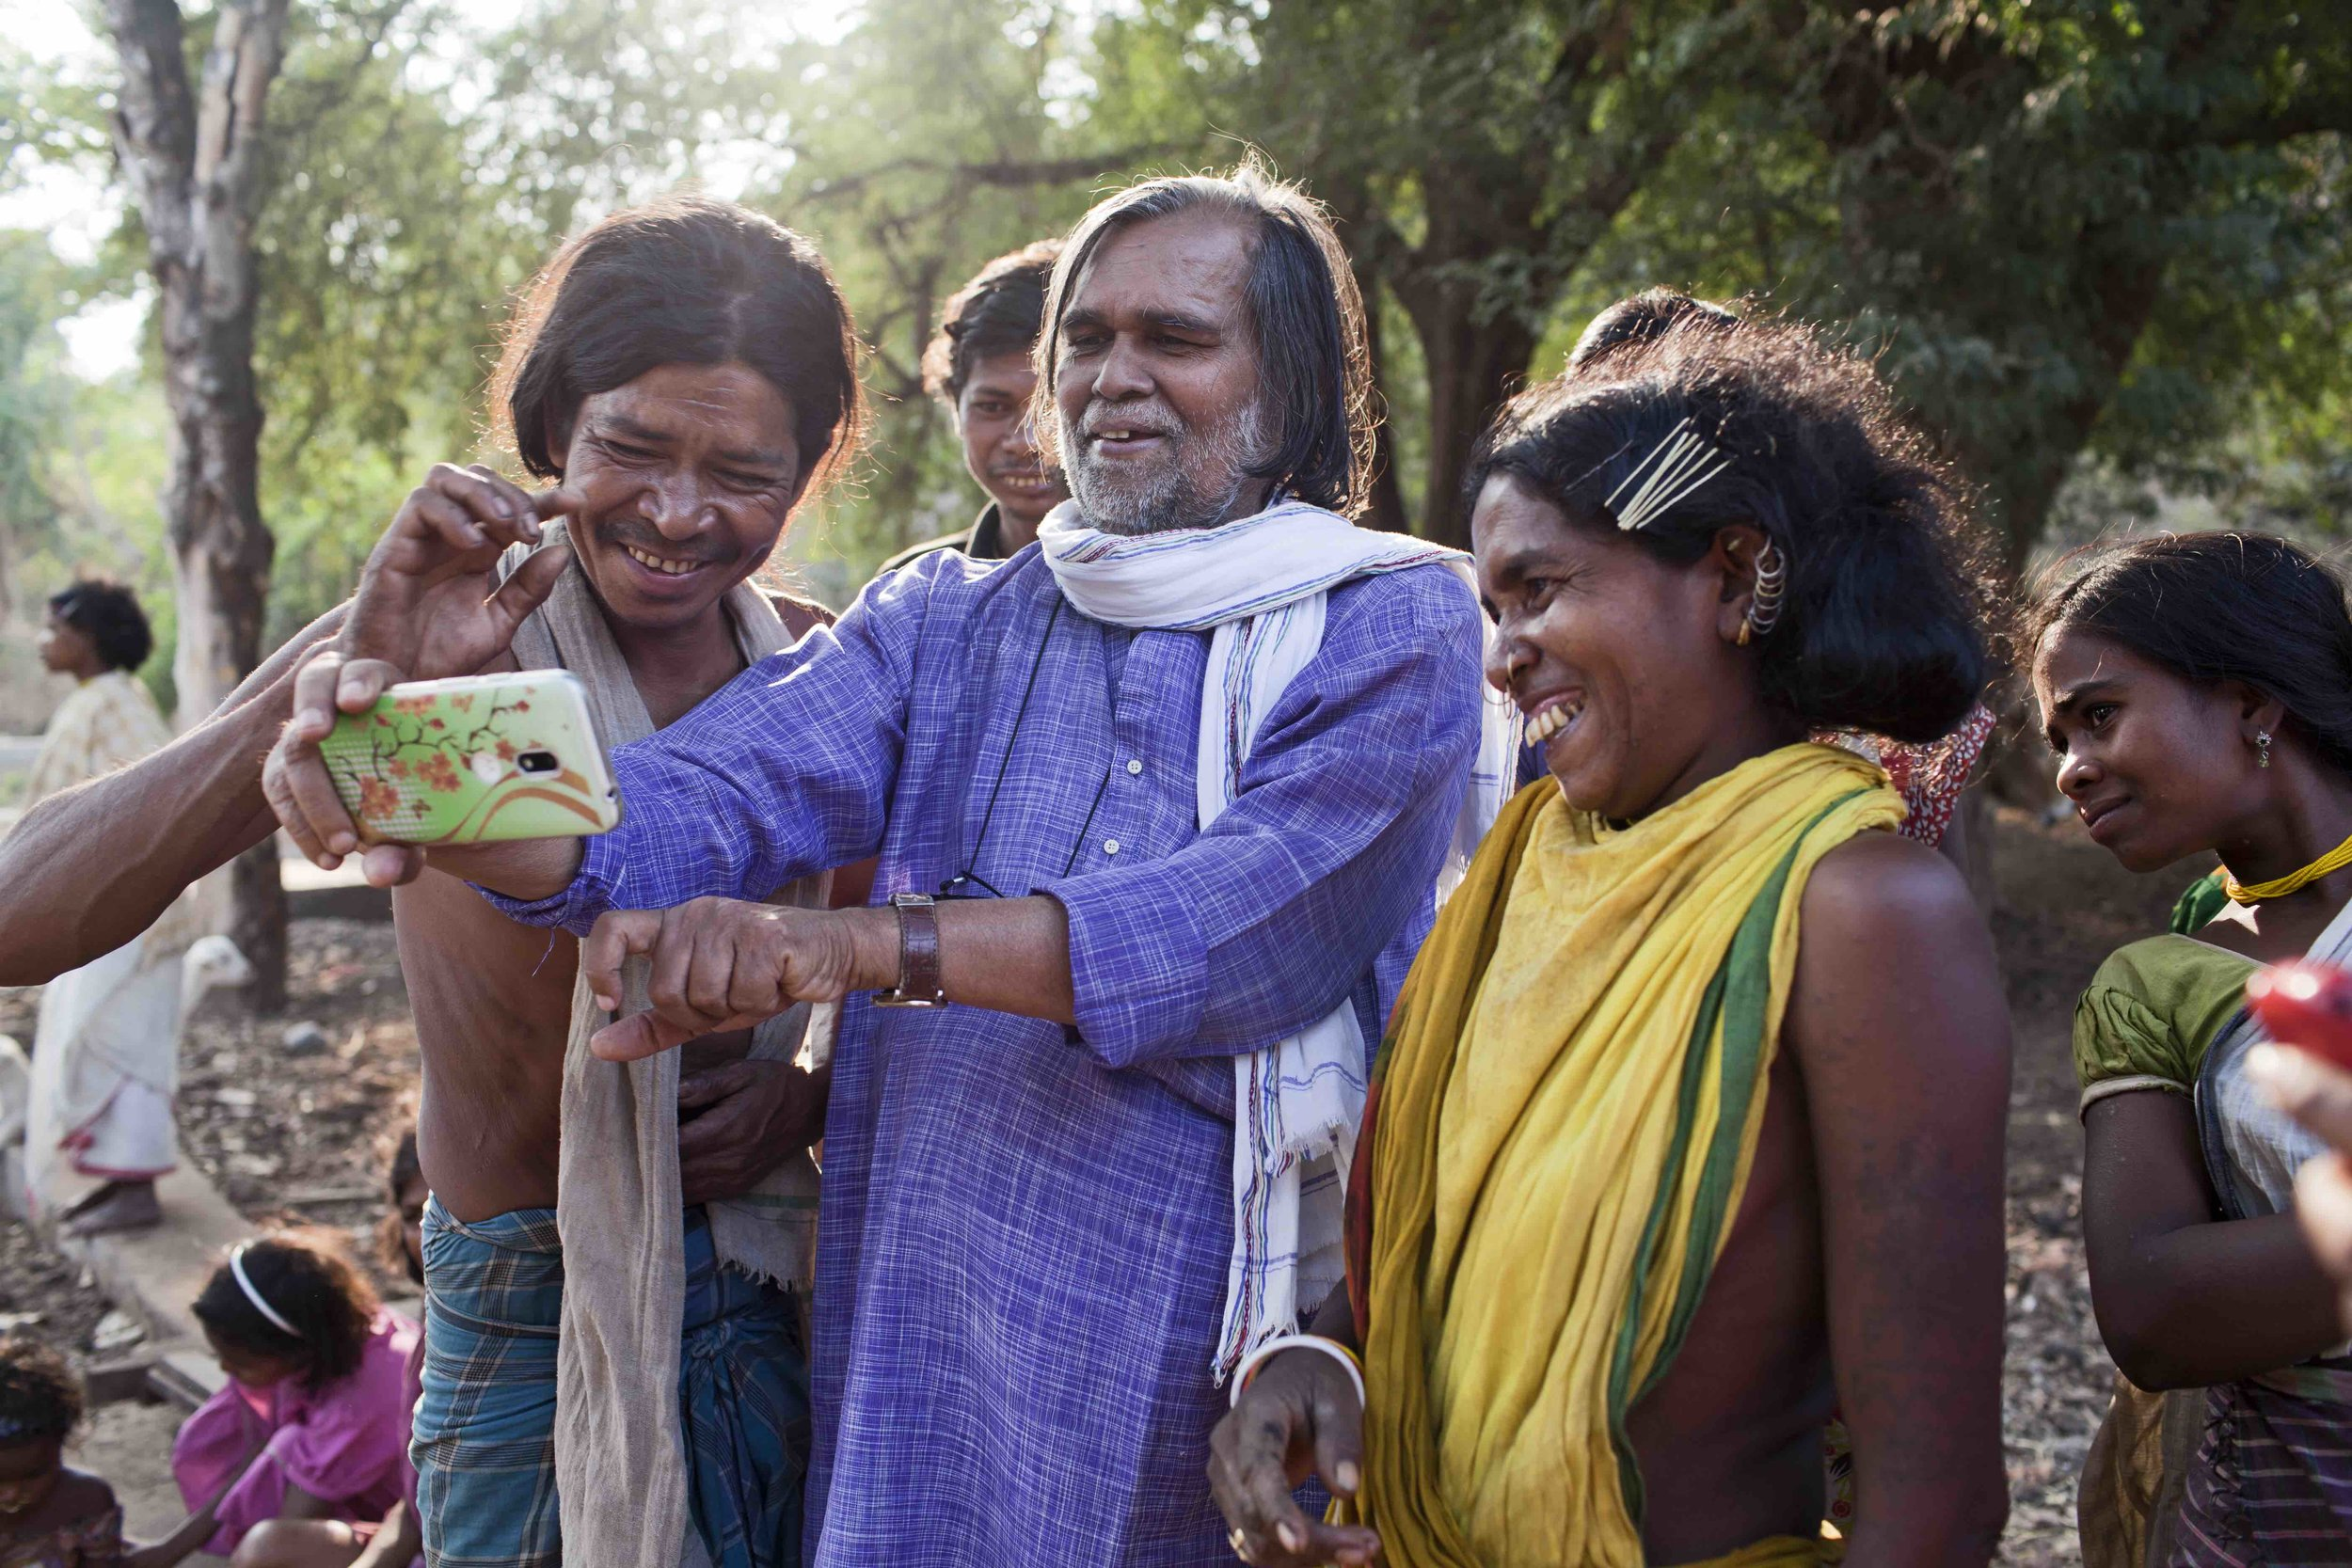 """Prafulla Samantara:""""By protecting the tribal people, we protect nature. This is our greatest responsibility."""" Picture: Goldman Environmental Prize 2017."""